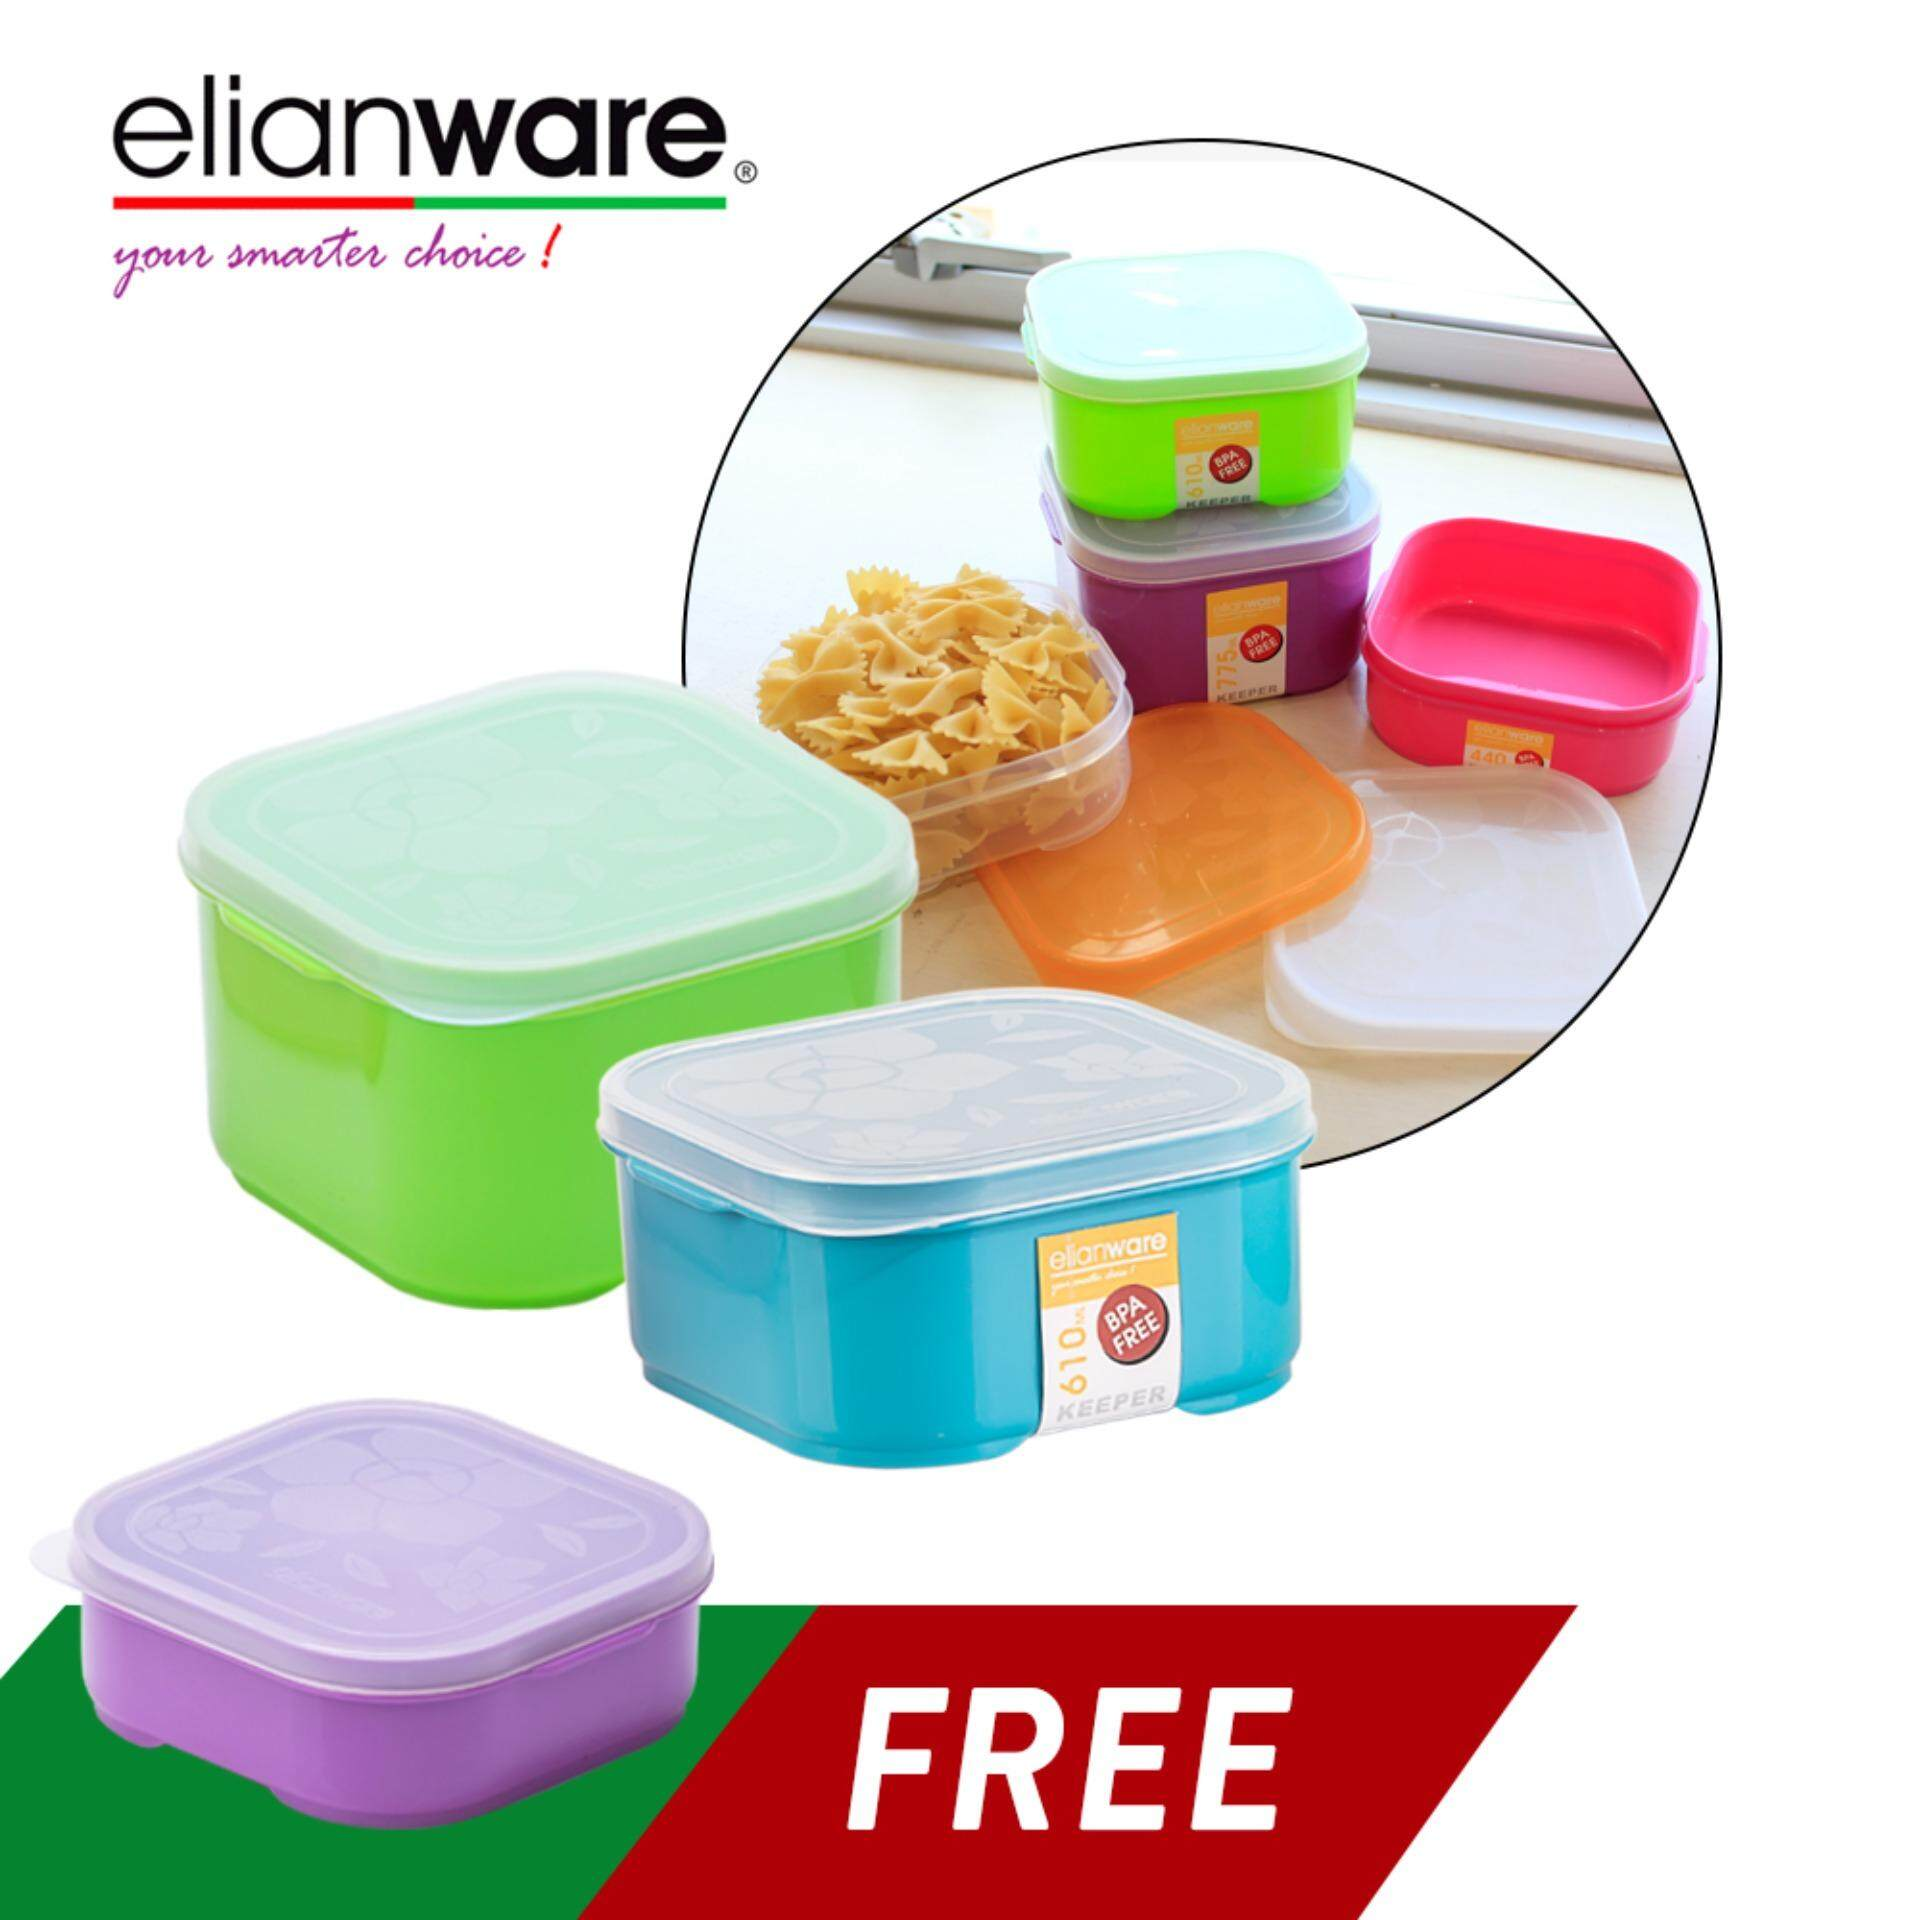 Elianware 3 Pcs Square Colourful Plastic Food Containers Set BPA Free